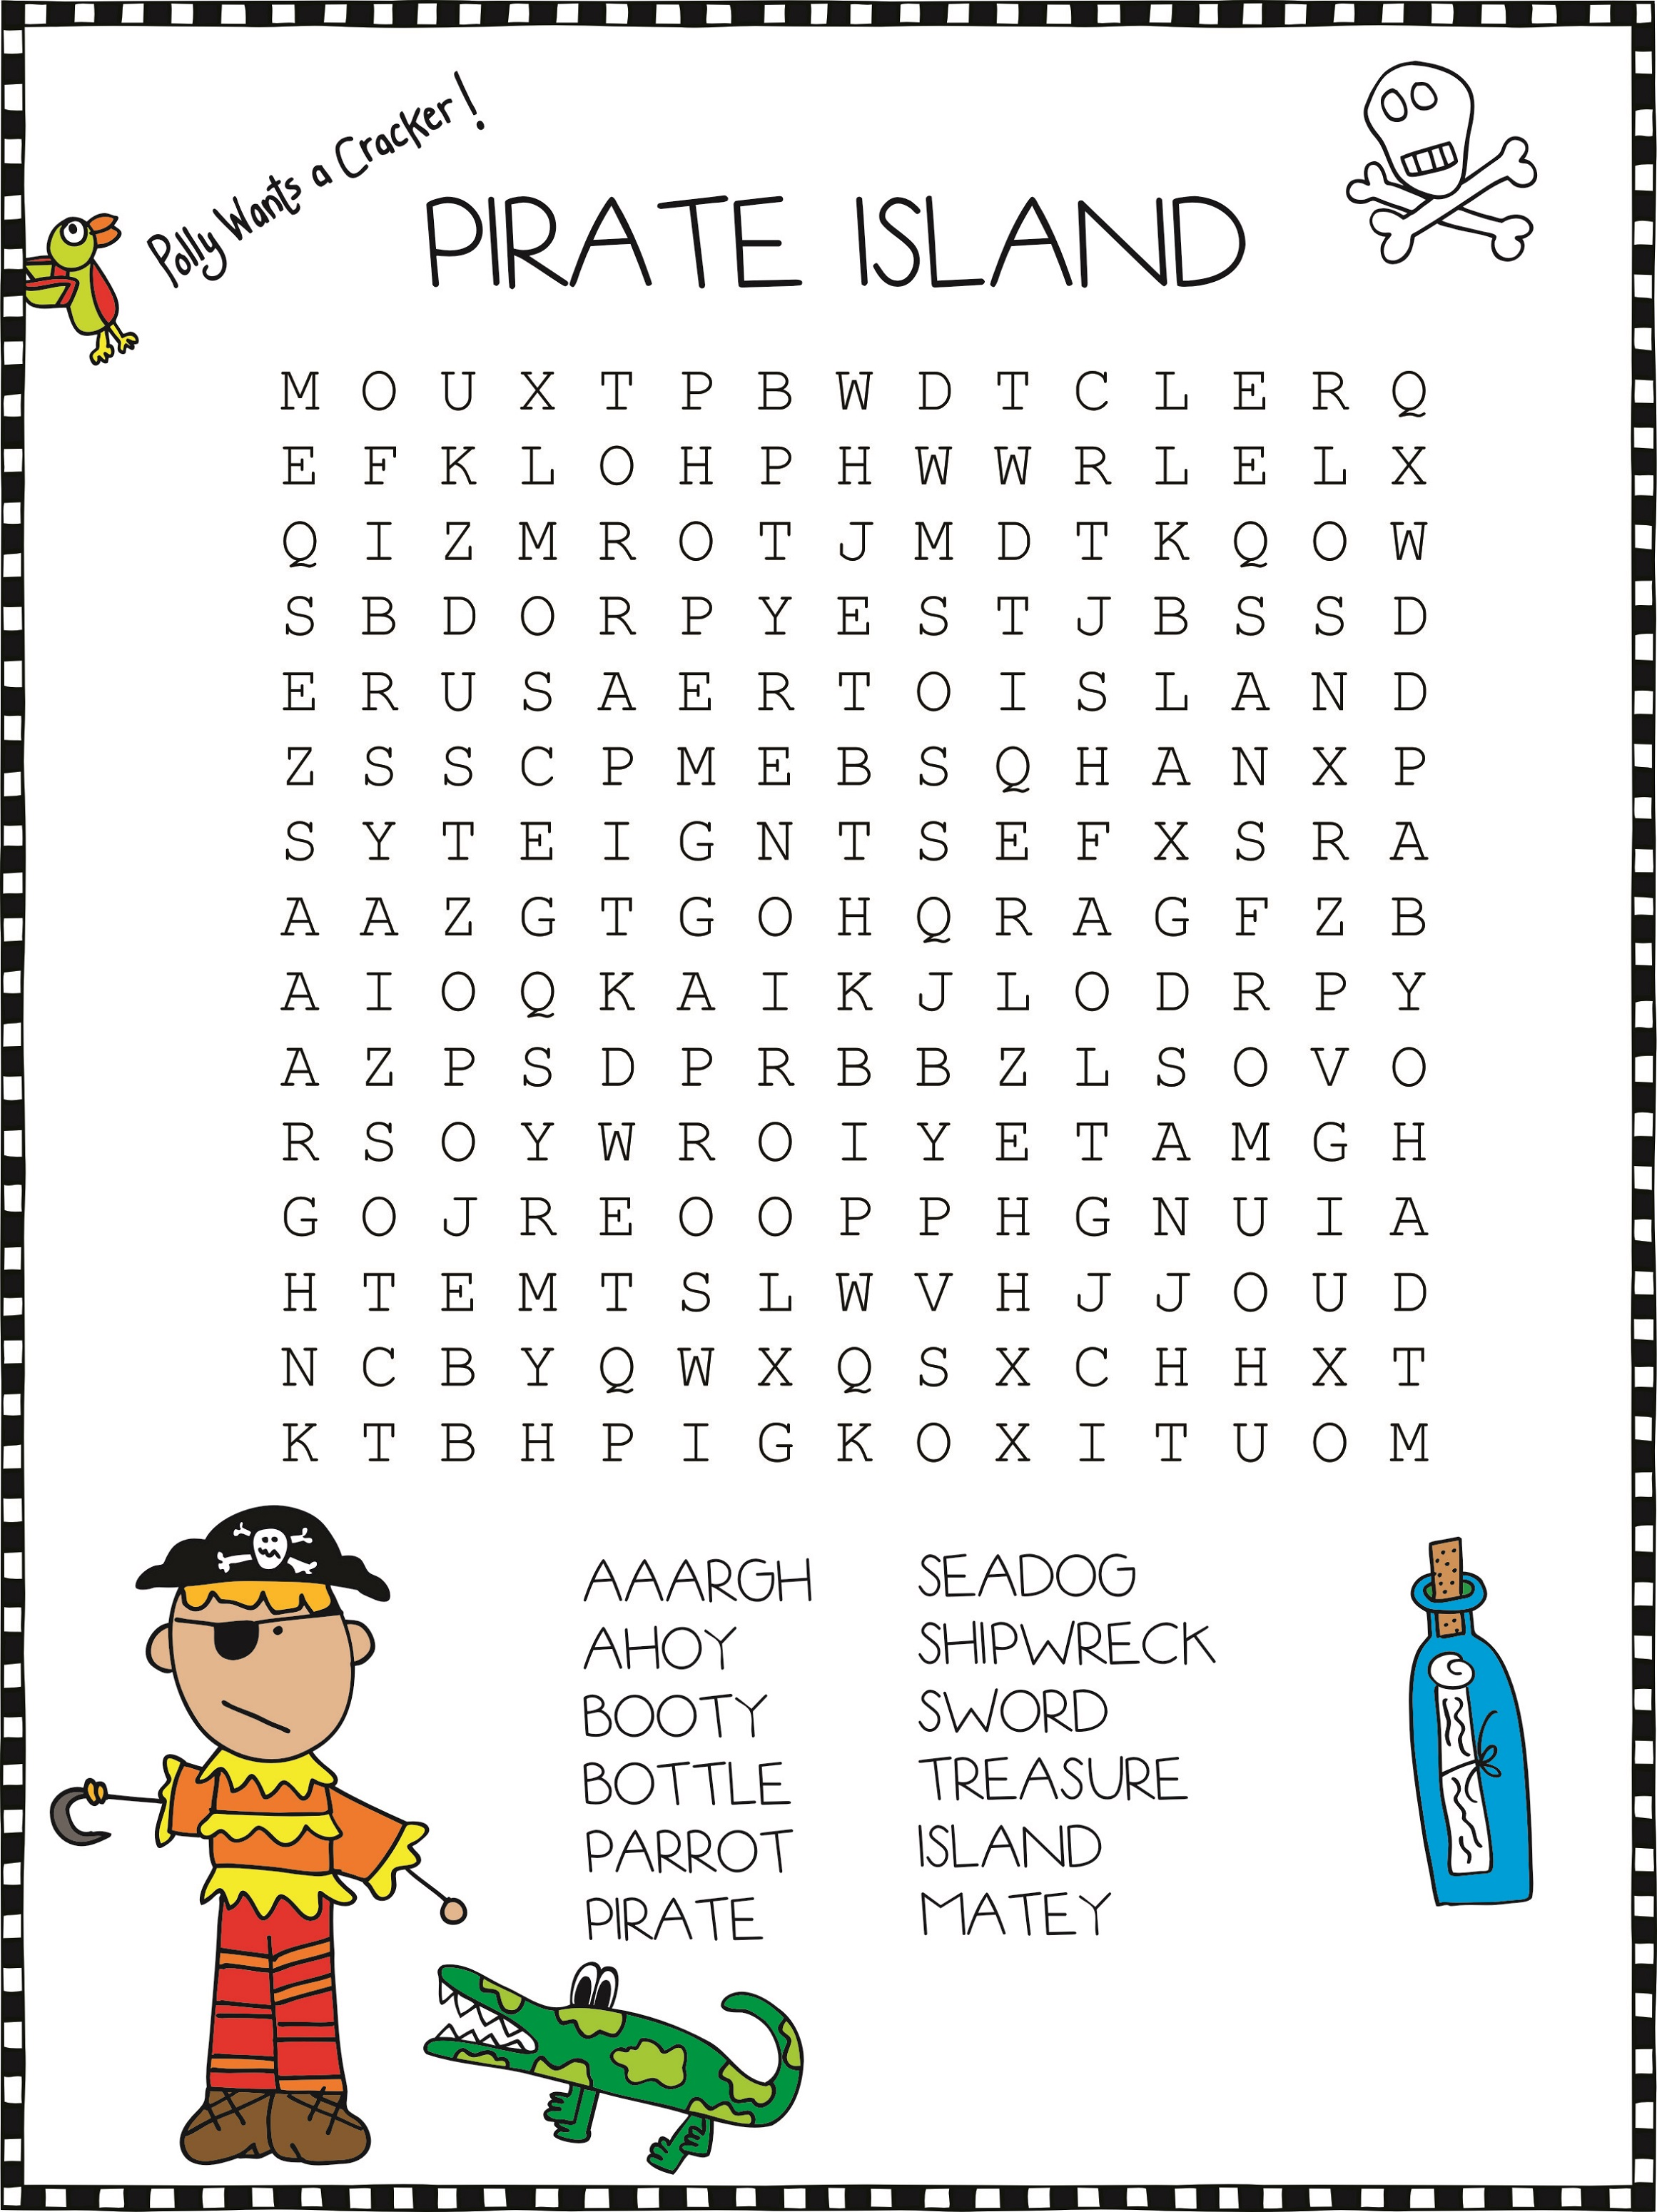 Pirate Crossword Puzzle Search